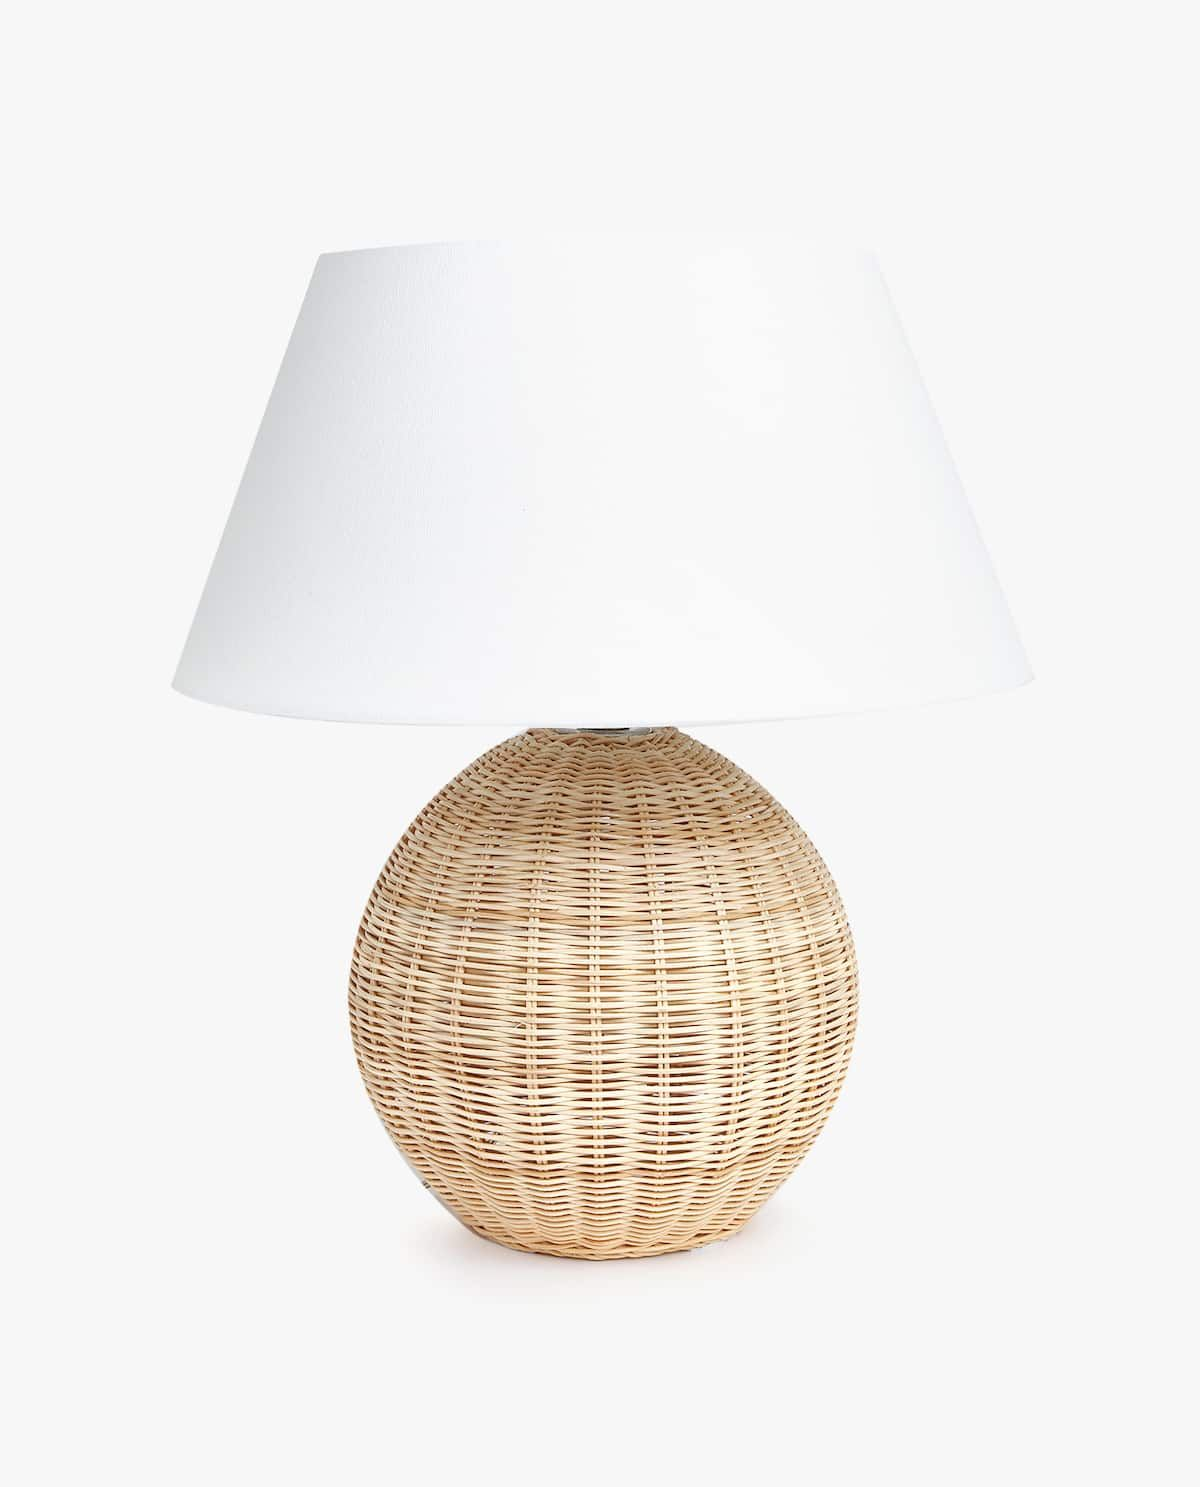 Suspension Ikea Paille Lampe Osier In 2019 Home Rattan Lamp White Lamp Shade